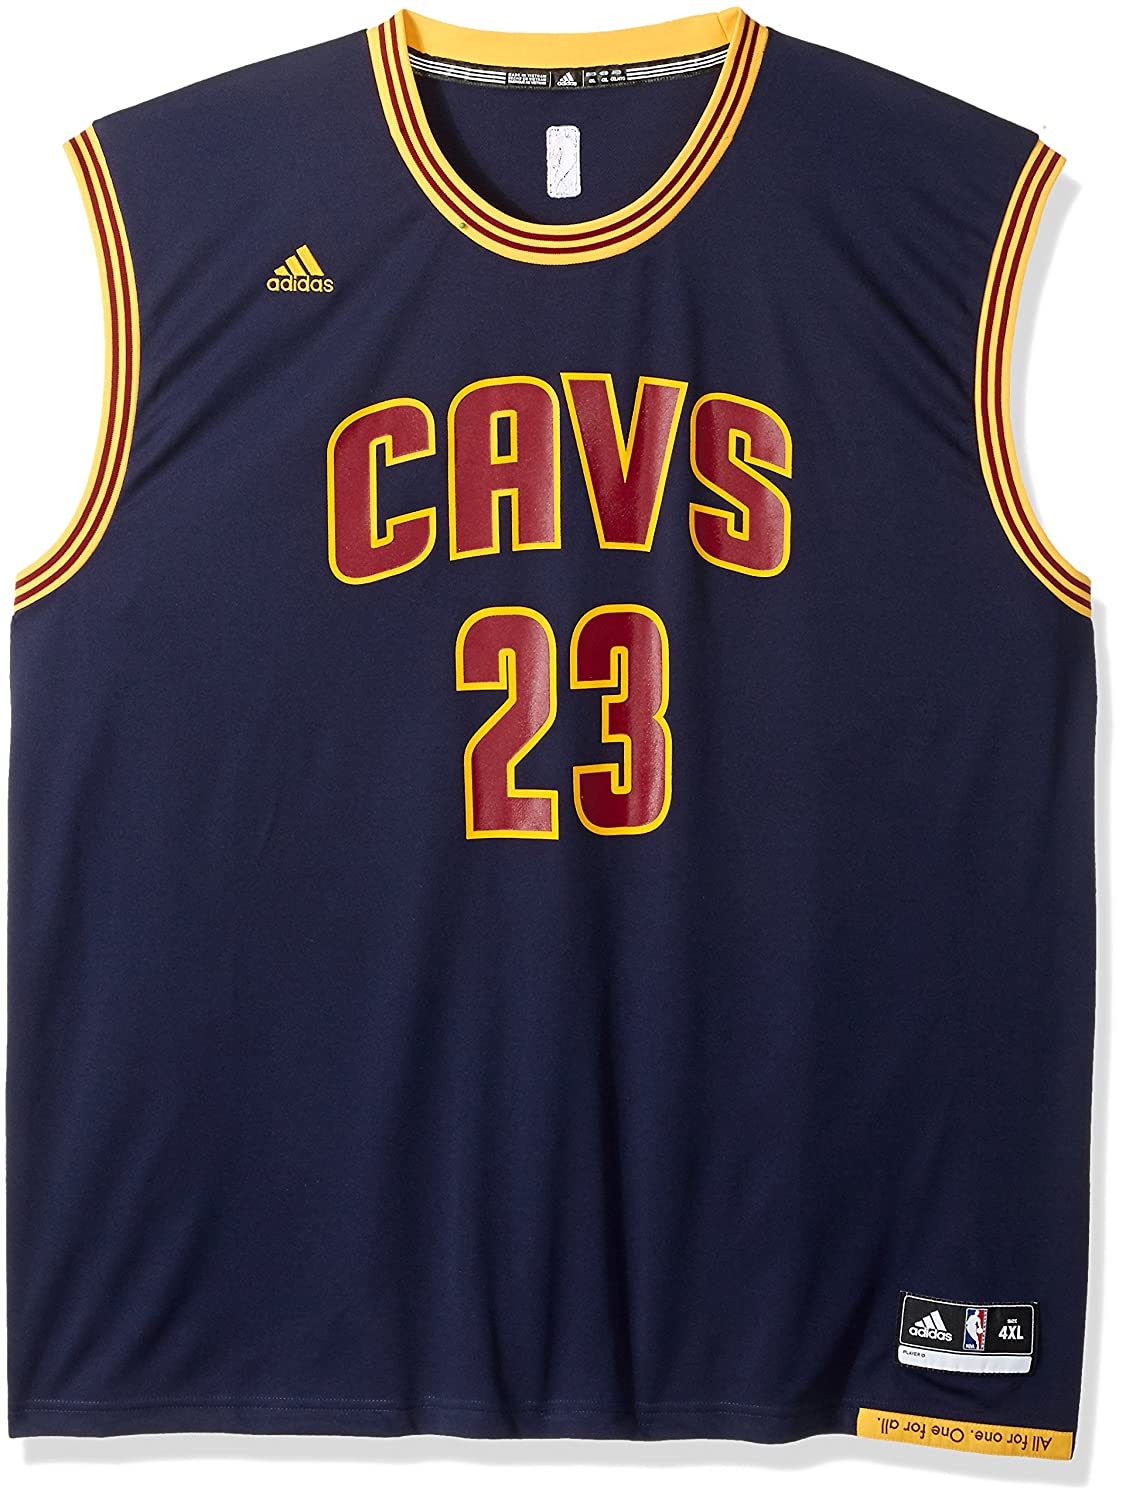 outlet store 0e0ac ebca1 adidas NBA Cleveland Cavaliers LeBron James #23 Men's ...